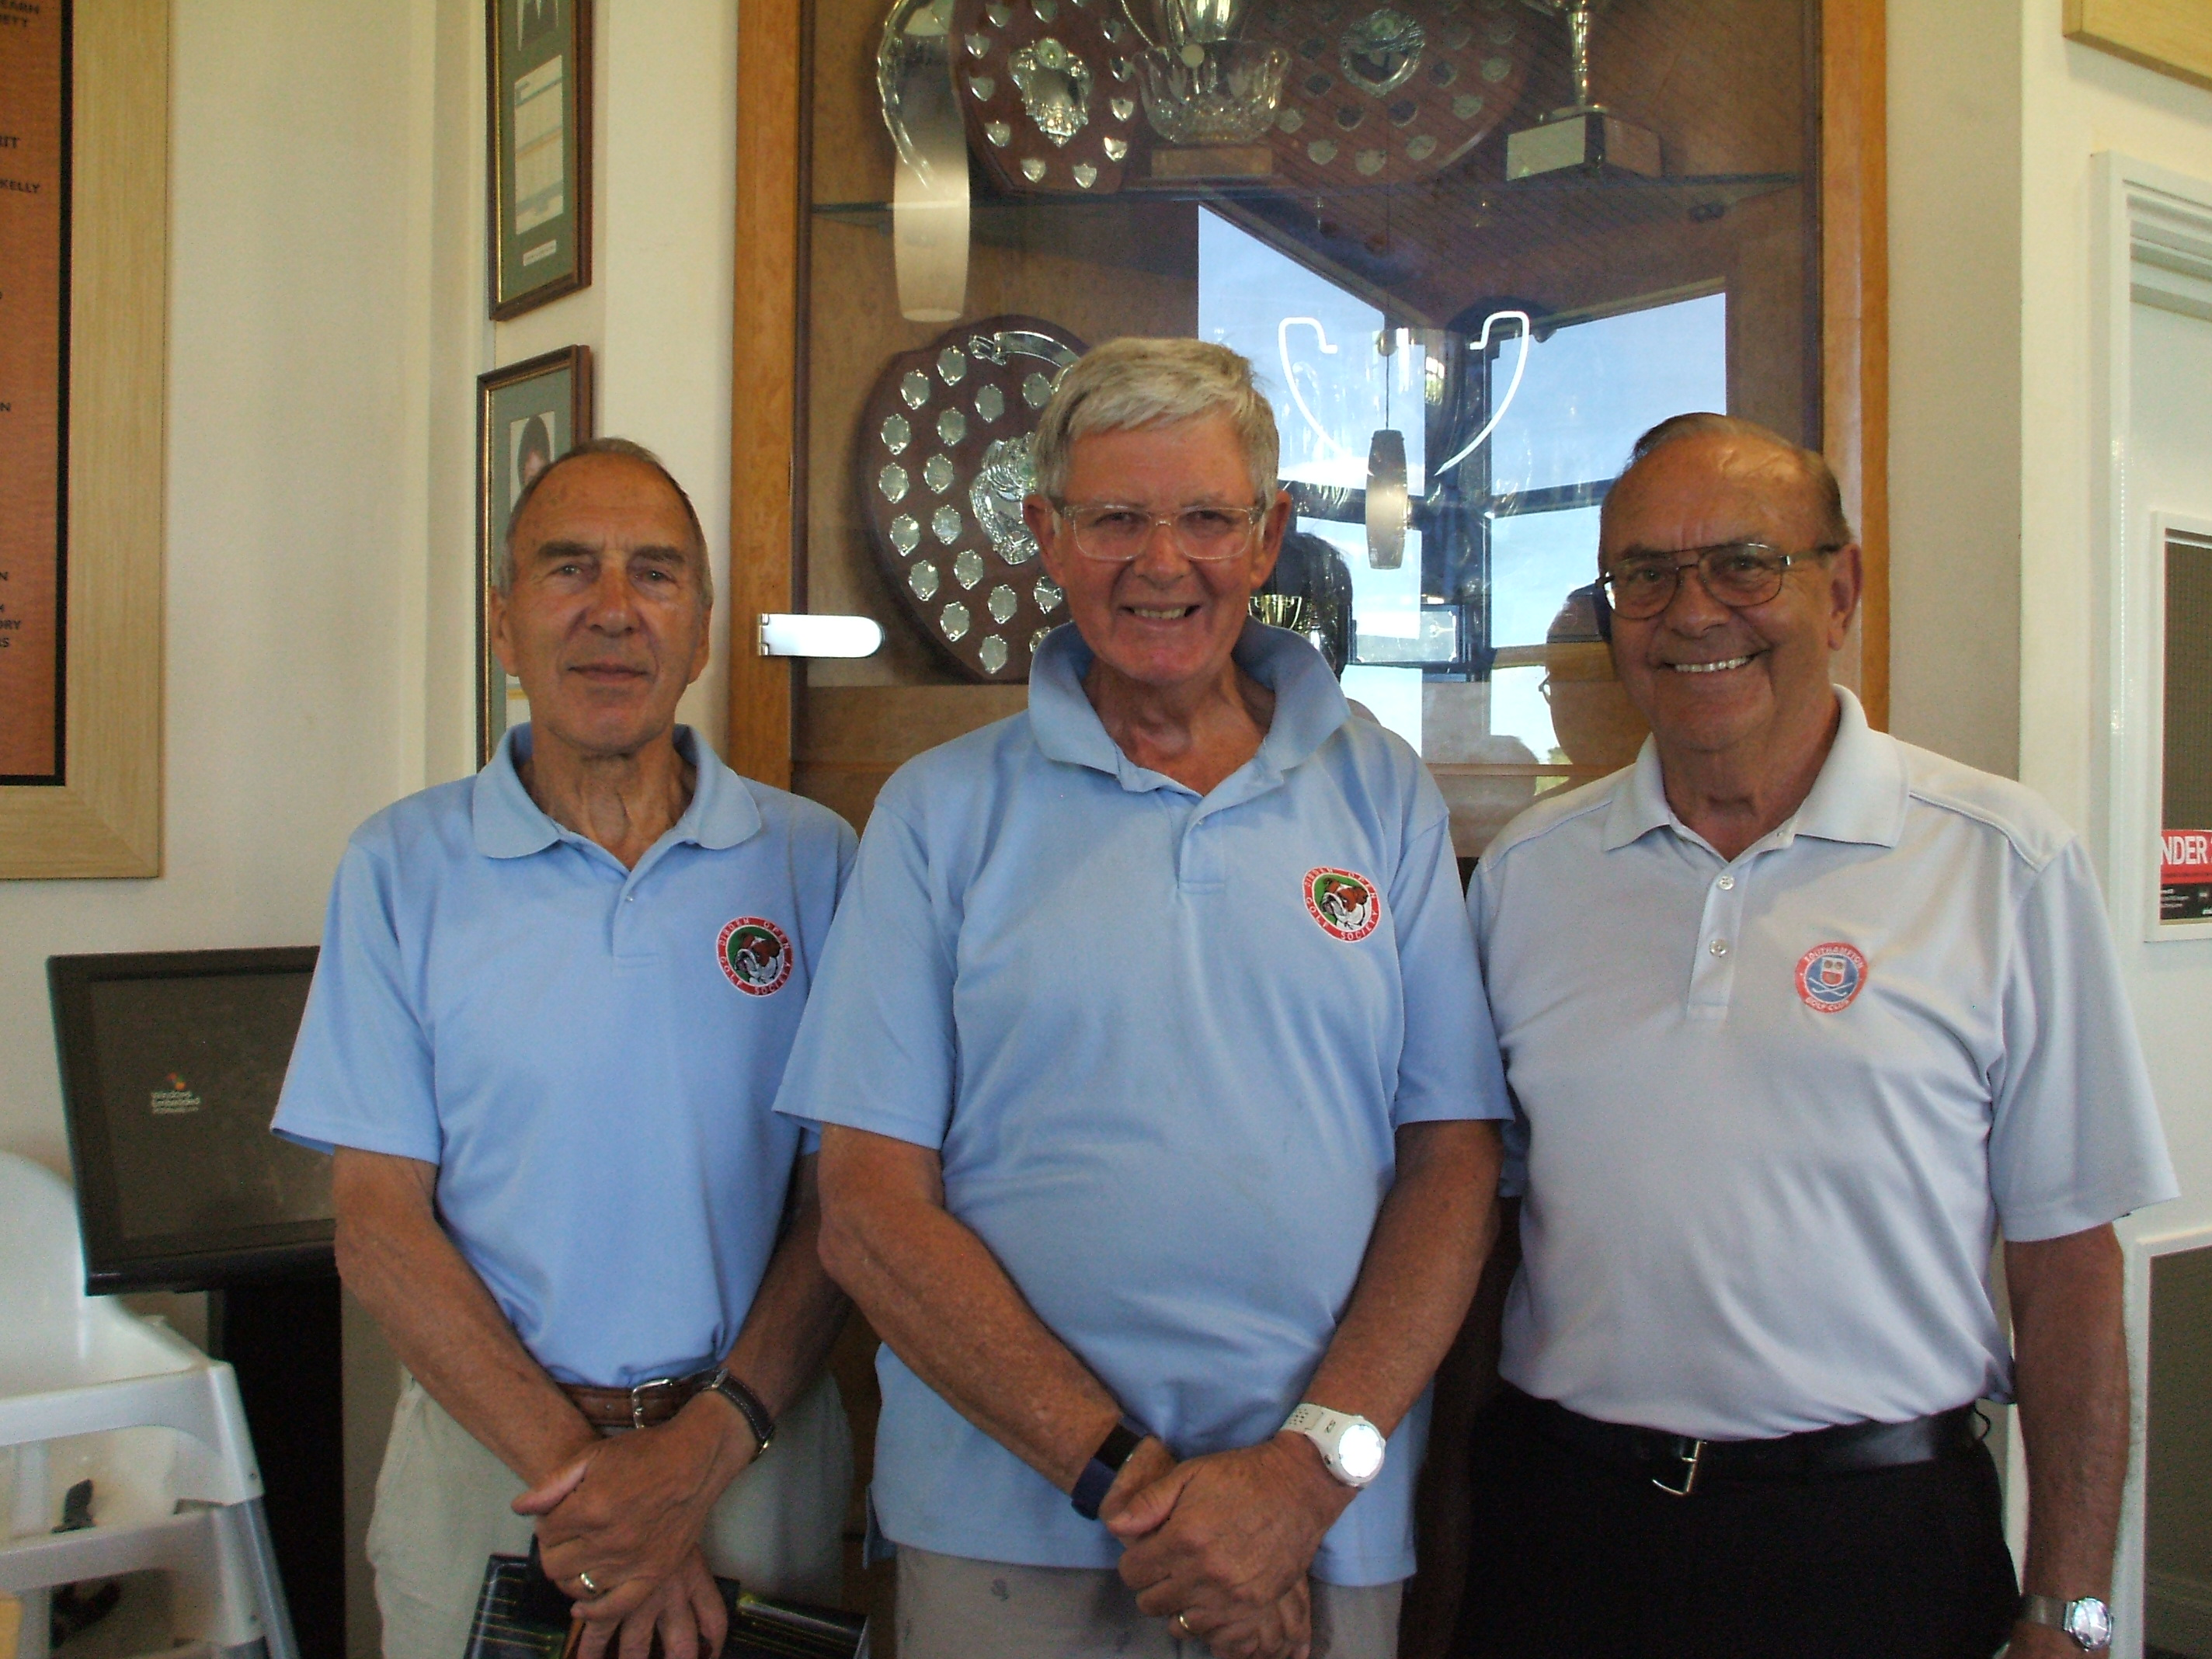 21 May: 3rd place team l to r John Poore; Clive Ellis; Dave Lockwood